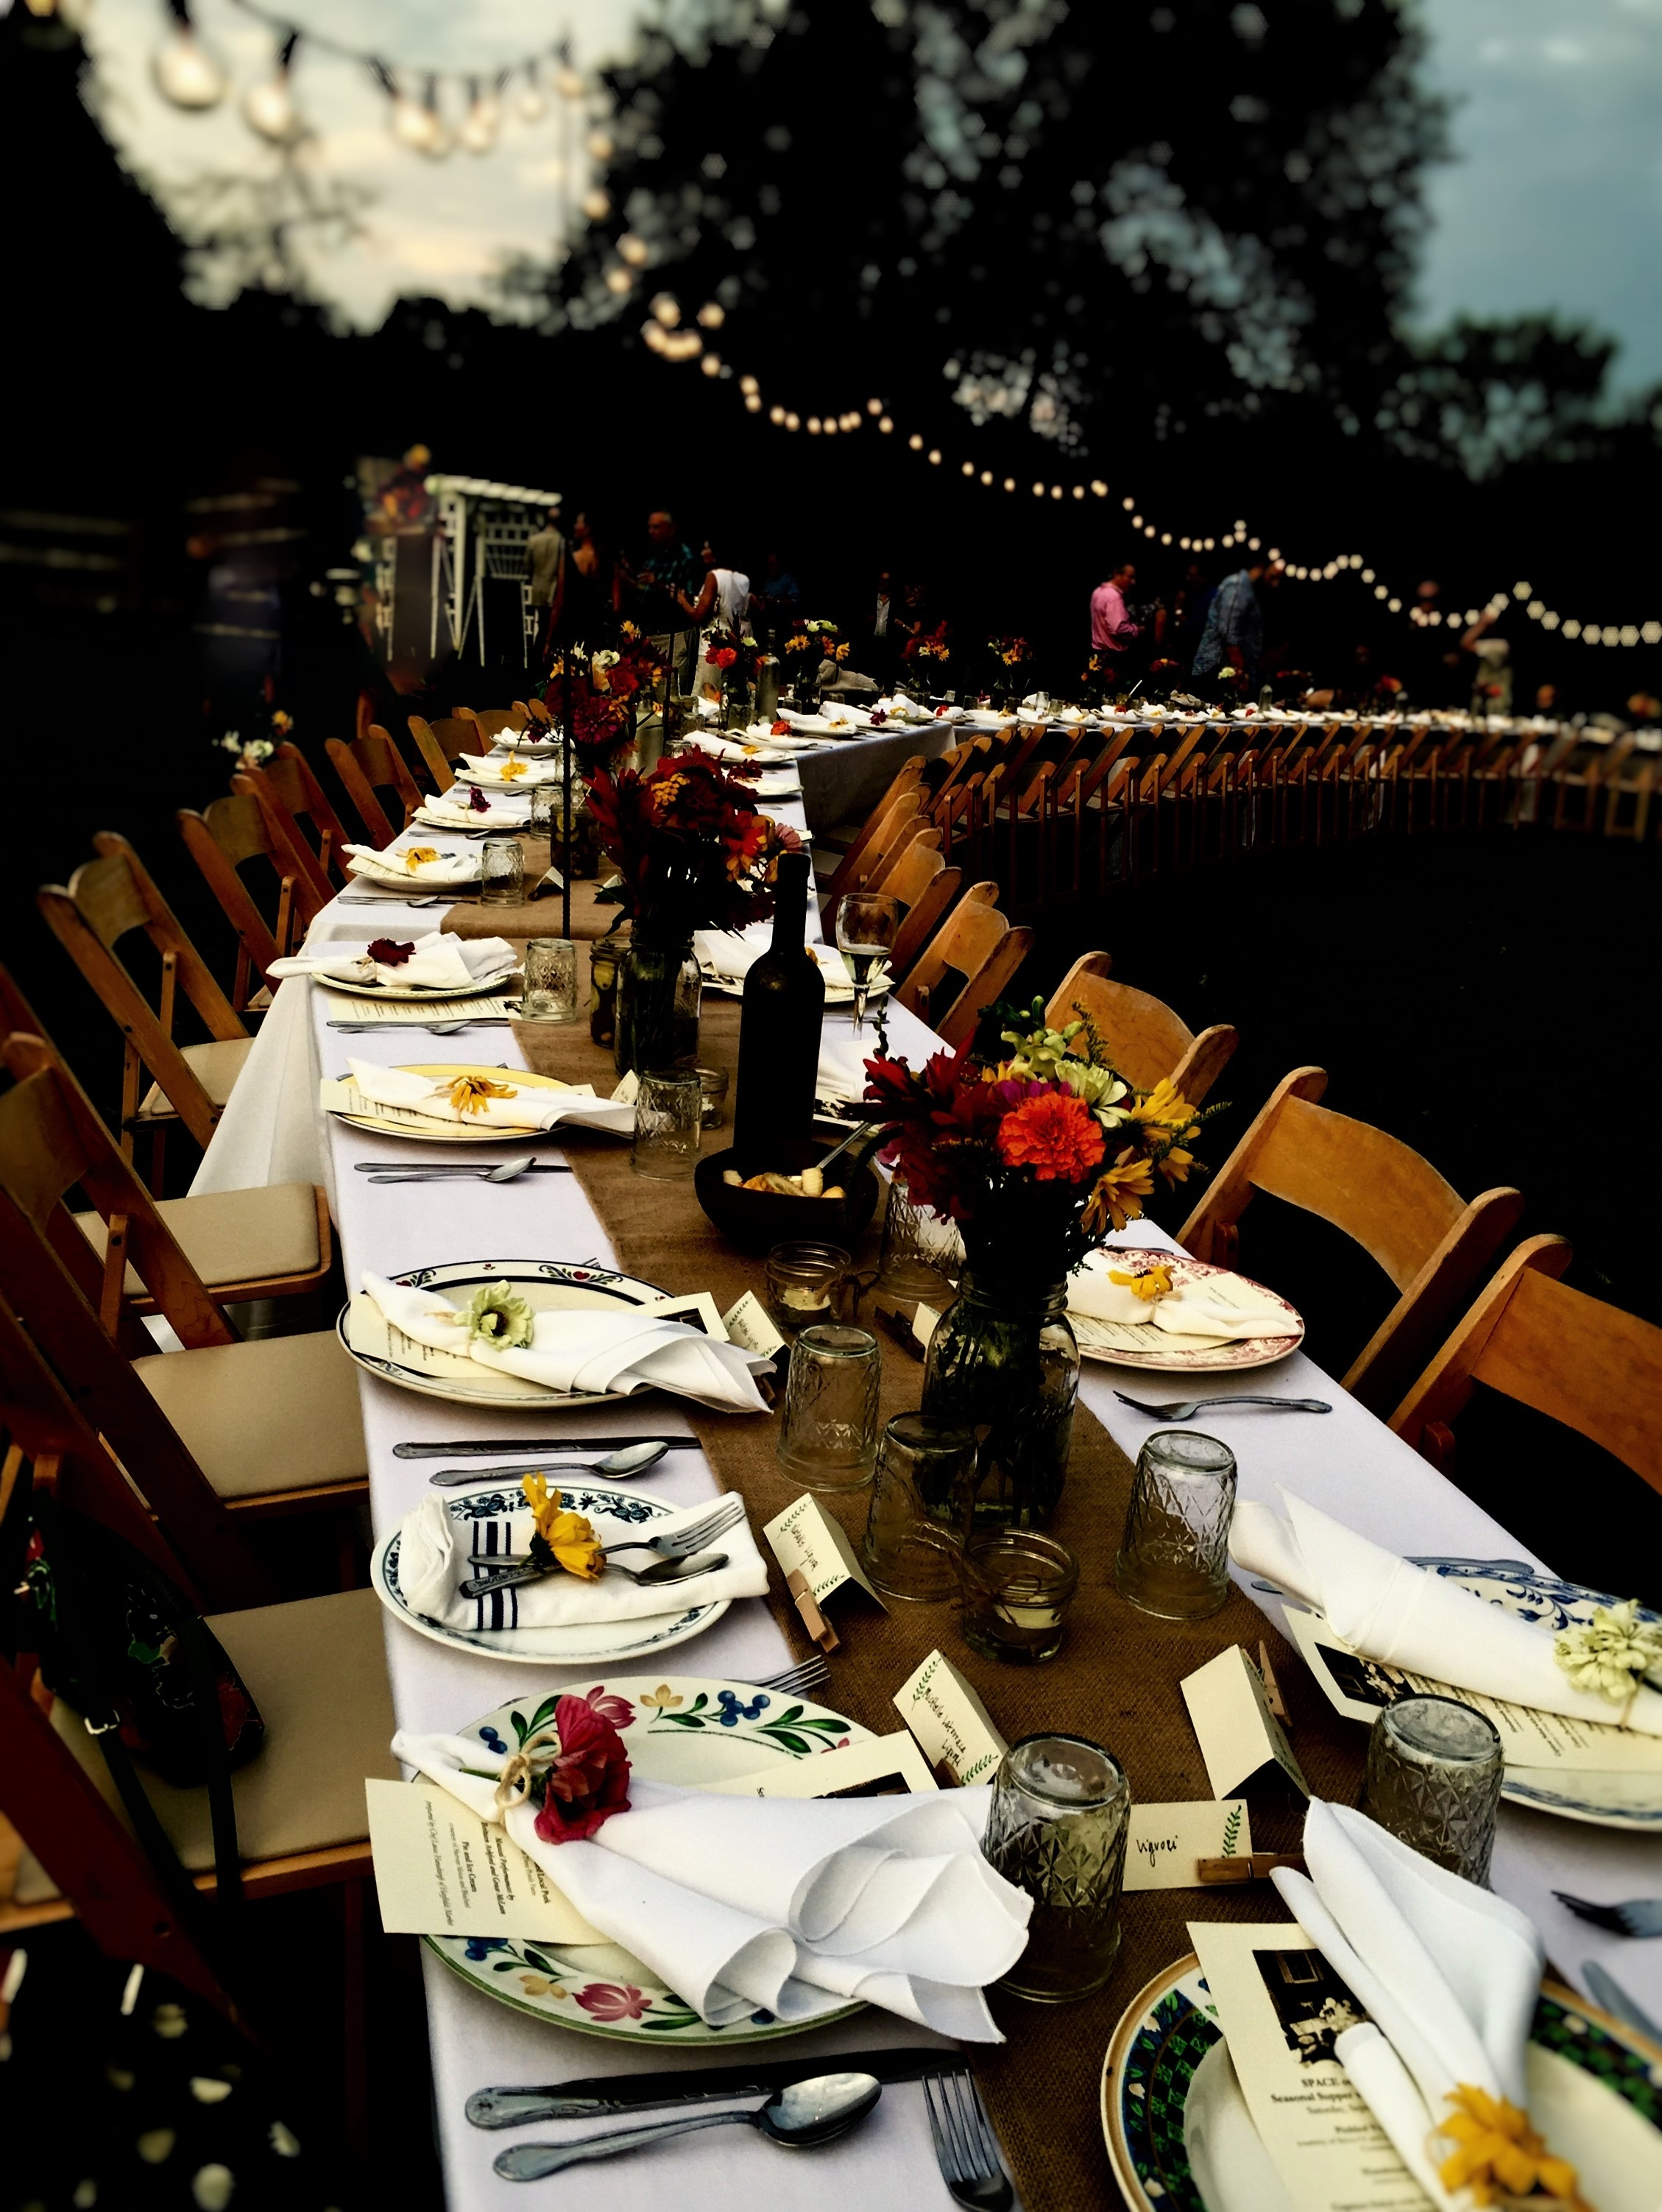 An outdoor supper at Ryder Farm in Brewster, N.Y. Photo credit: M. Ciavardini